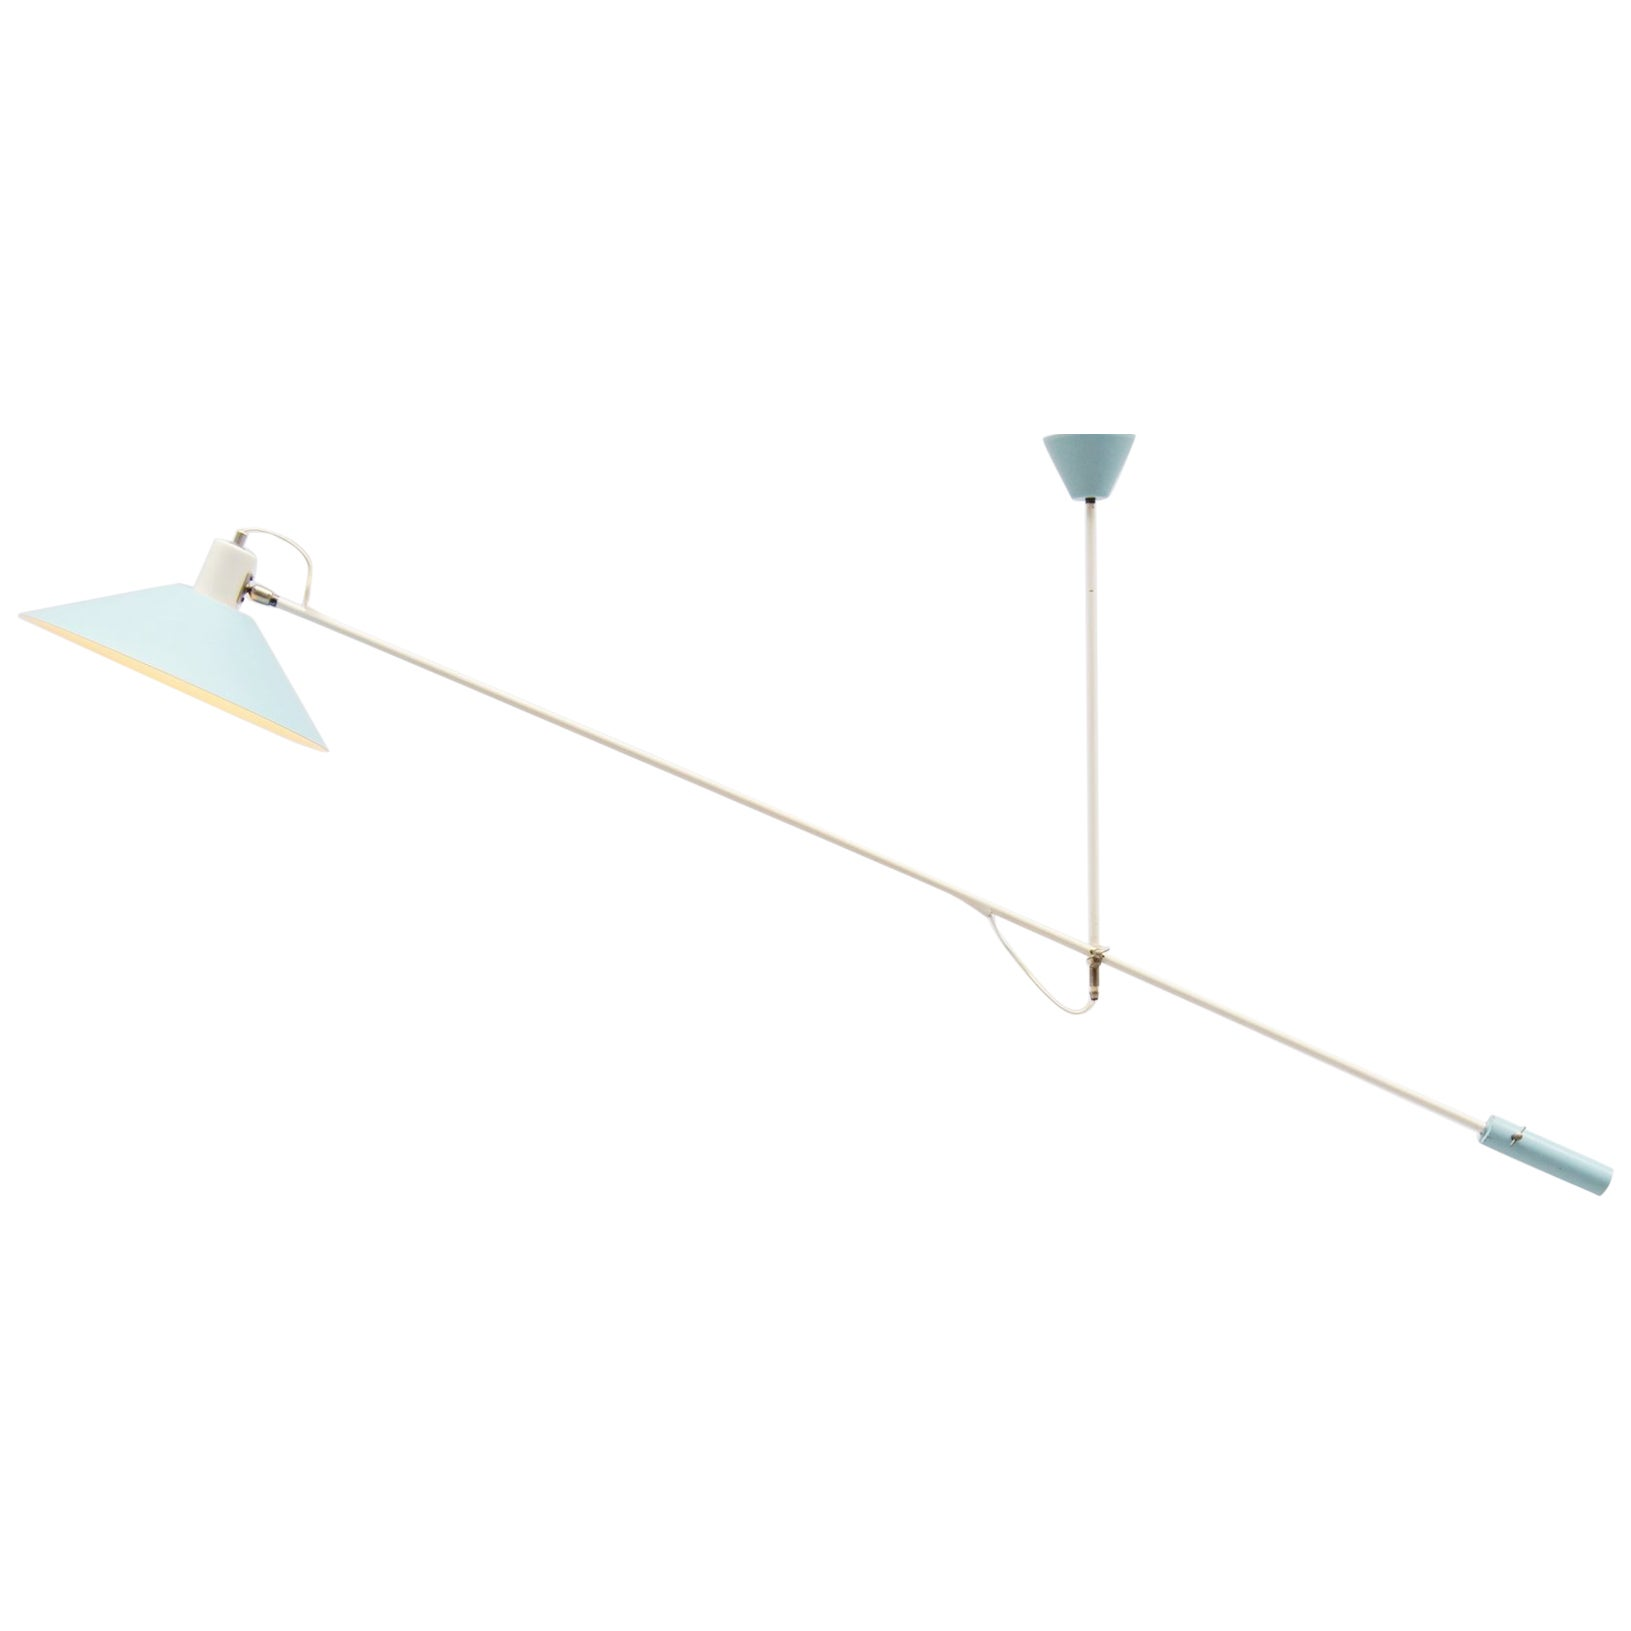 JJM Hoogervorst Anvia Counter Balance Ceiling Lamp, Holland, 1955